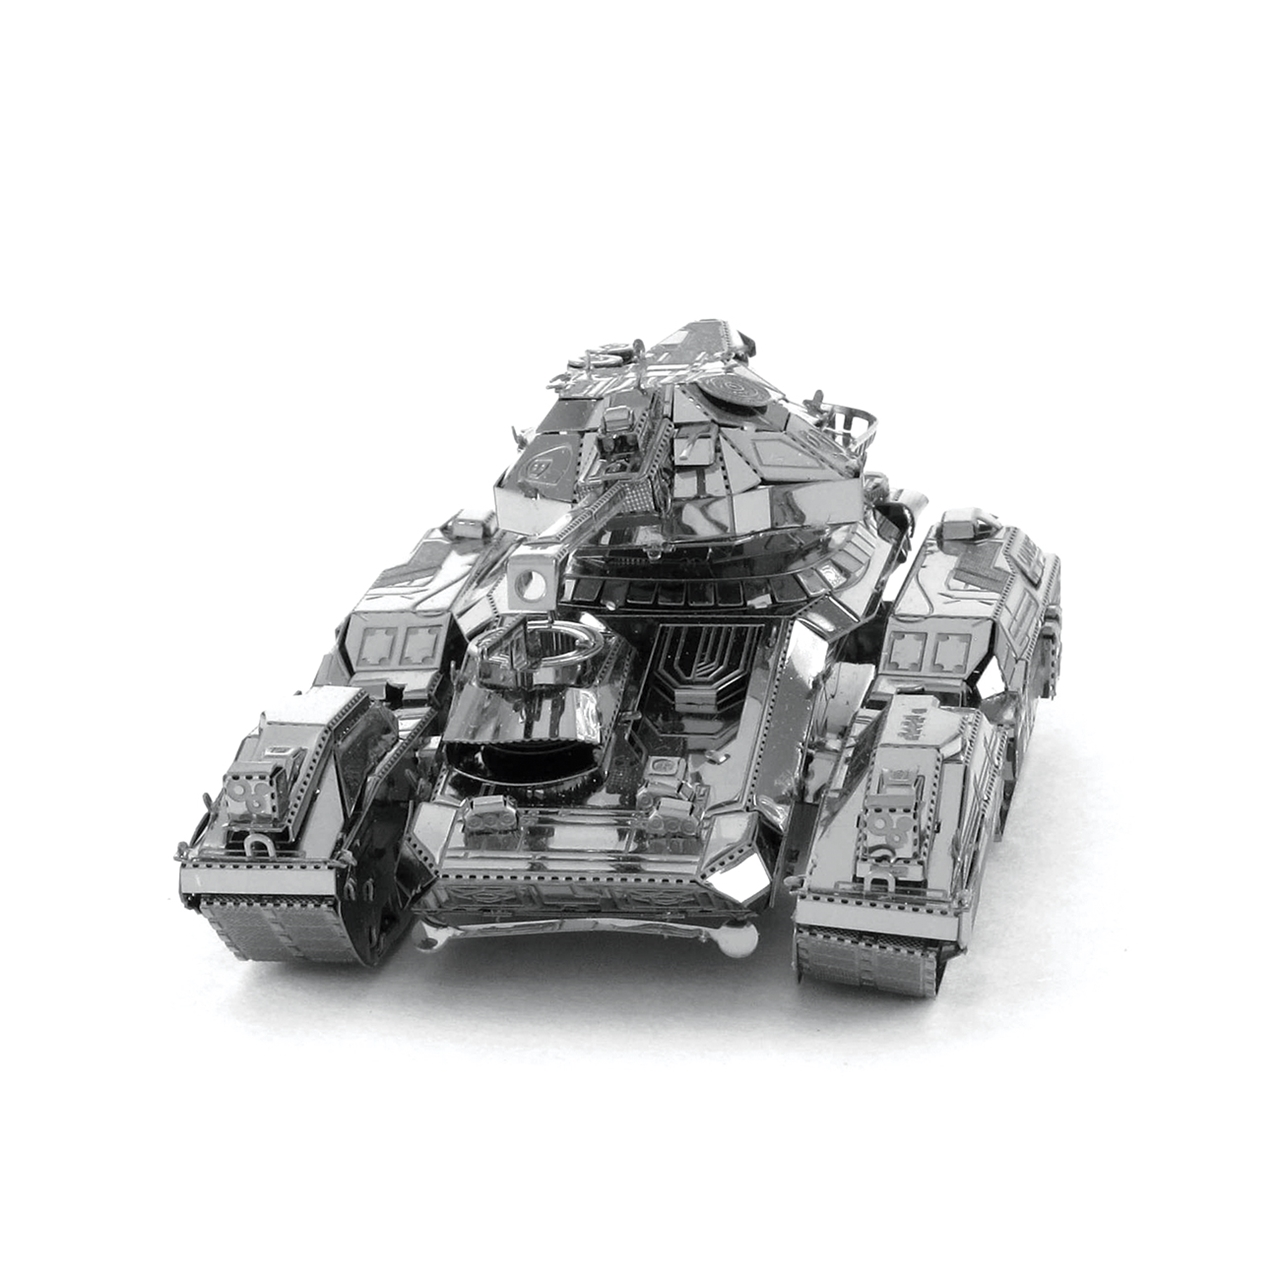 Fascinations | Metal Earth 3D Metal Model DIY Kits:: Halo Unsc Scorpion